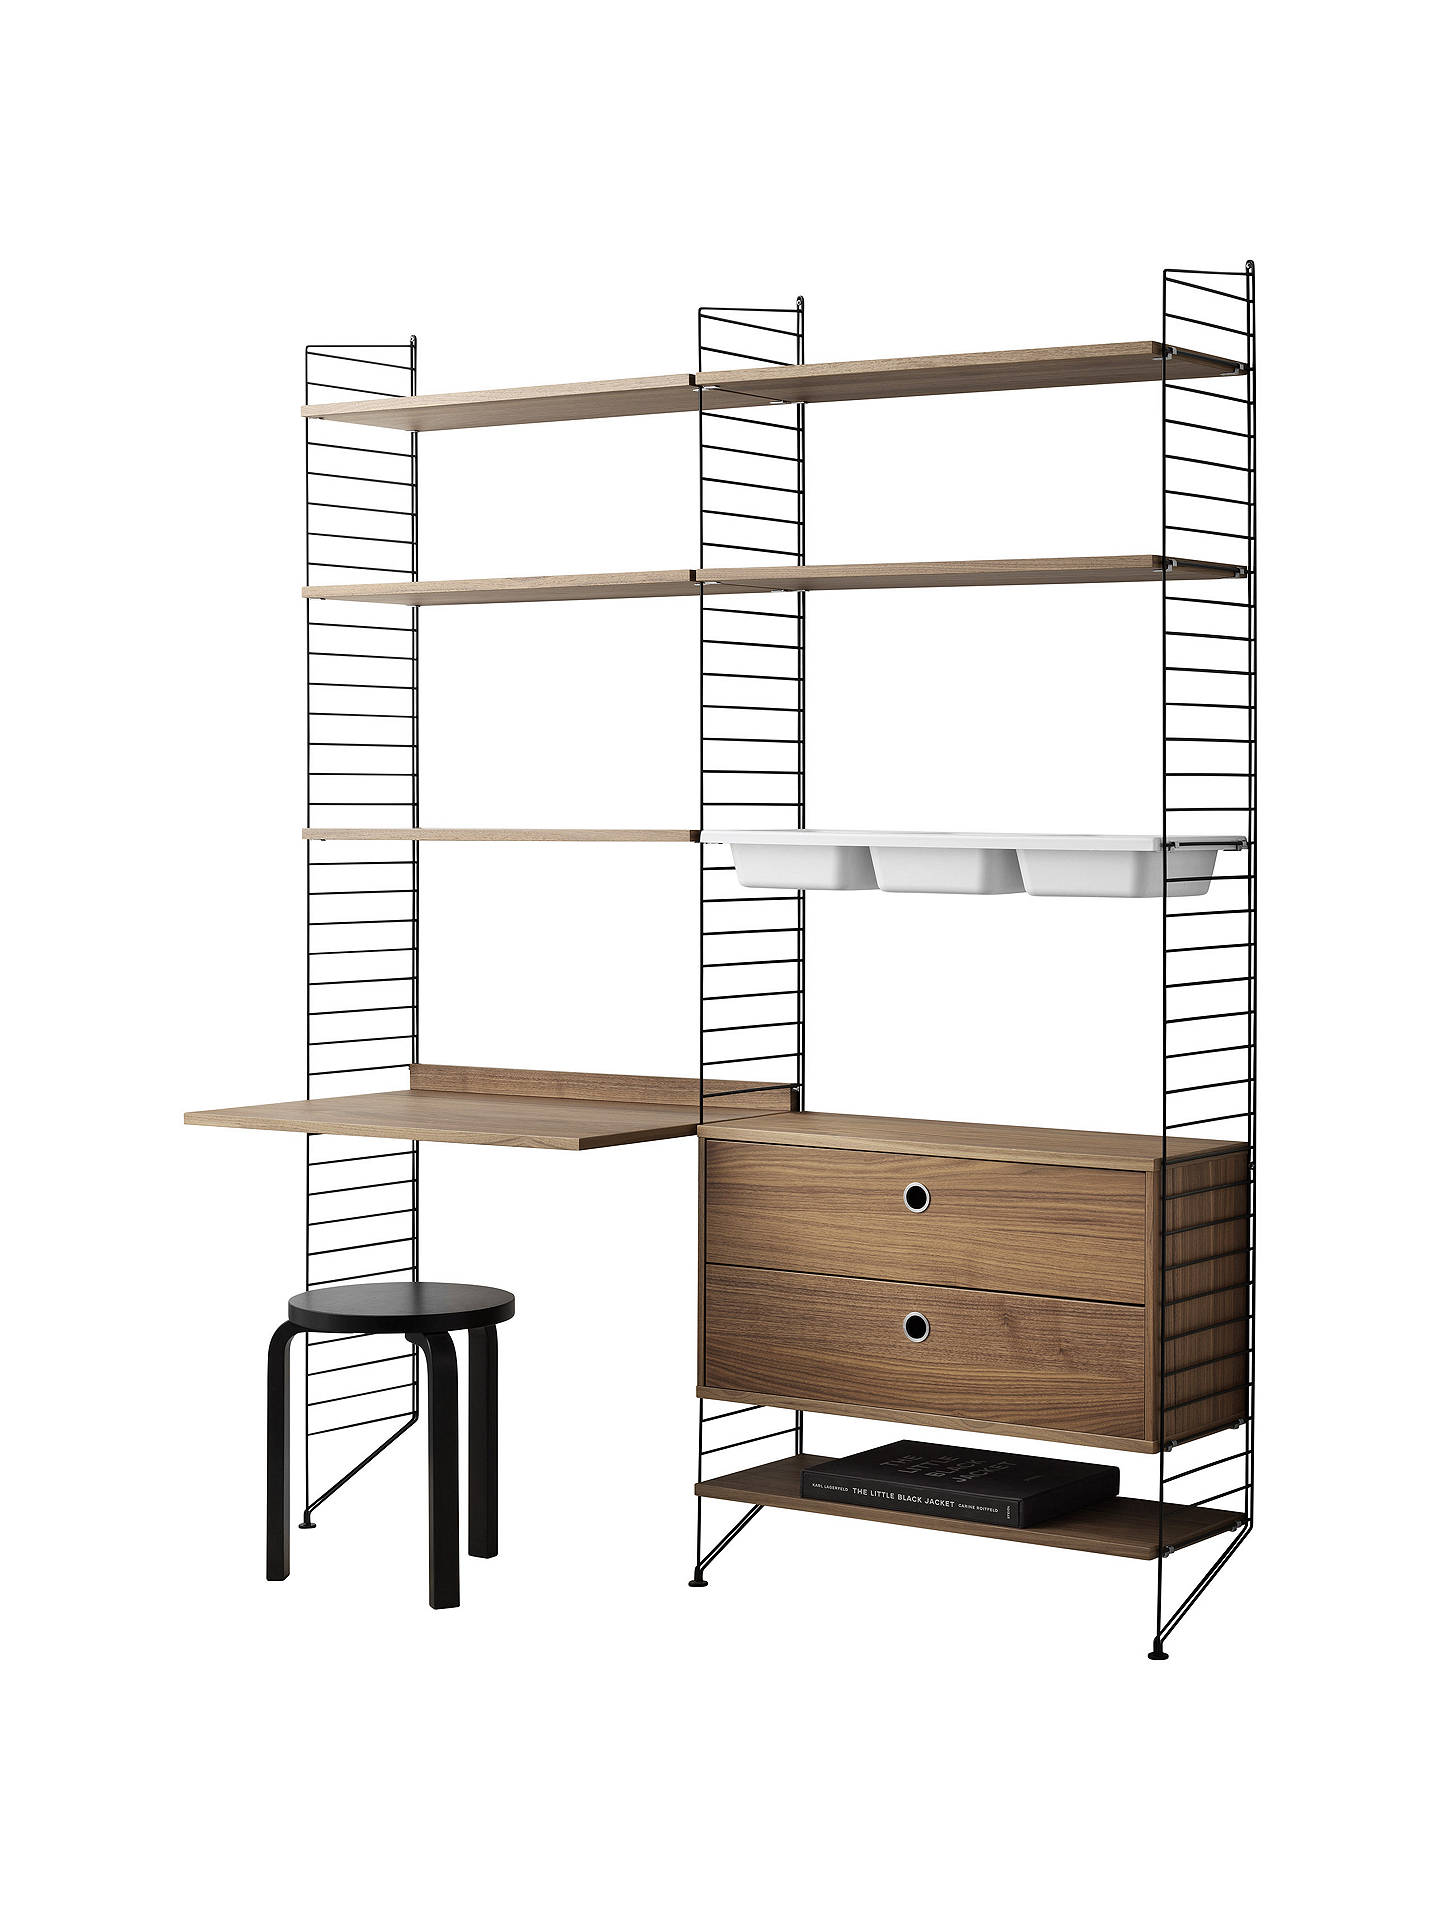 Buystring Shelving Unit with Shelves, Work Desk, 2 Drawer Chest, 3 Bowl Shelf and Wall Fastened Side Racks, Walnut/Black Online at johnlewis.com